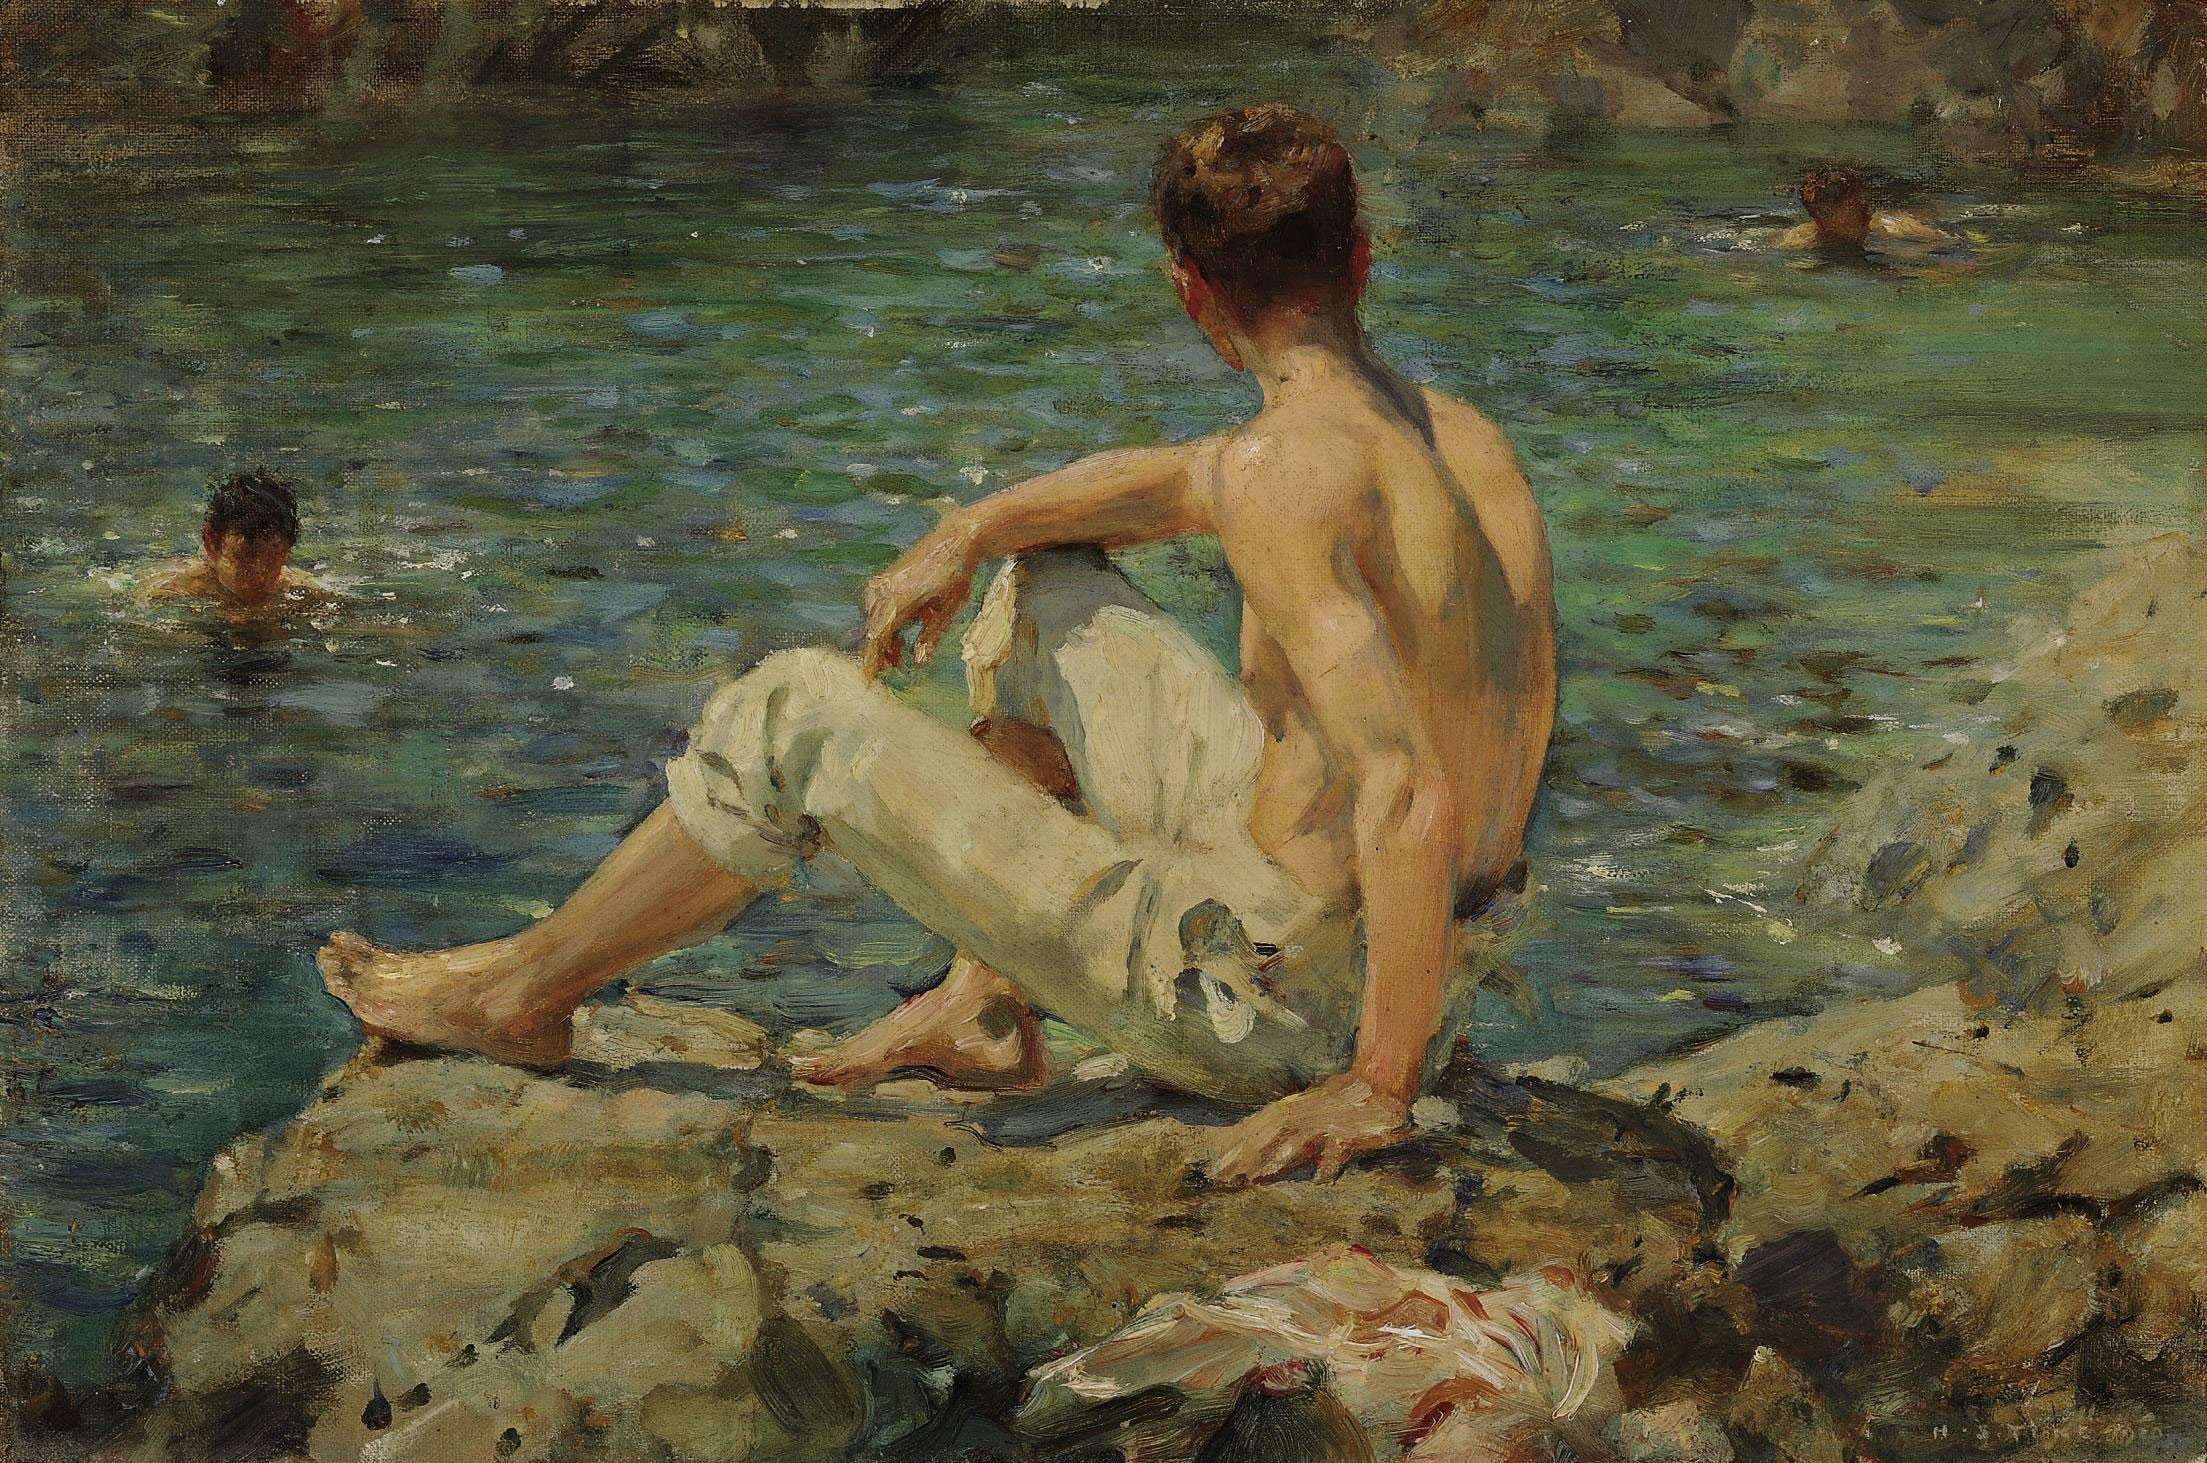 Henry_Scott_Tuke_-_Green_and_Gold,_1920.jpg